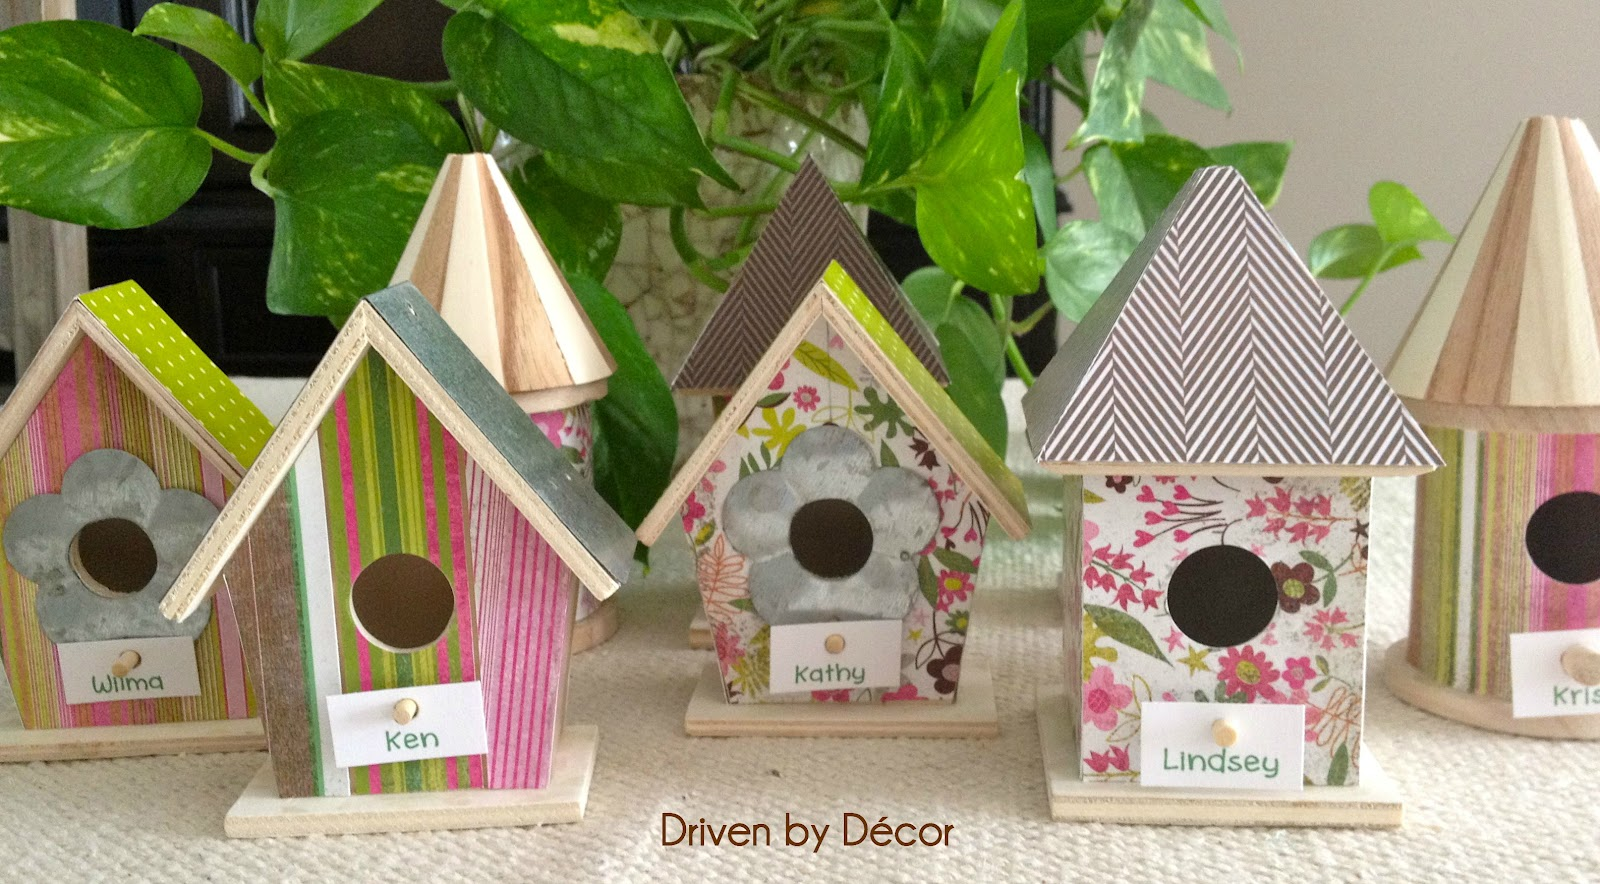 How to put scrapbook paper on wood - Setting The Table For Easter Diy Birdhouse Place Cards